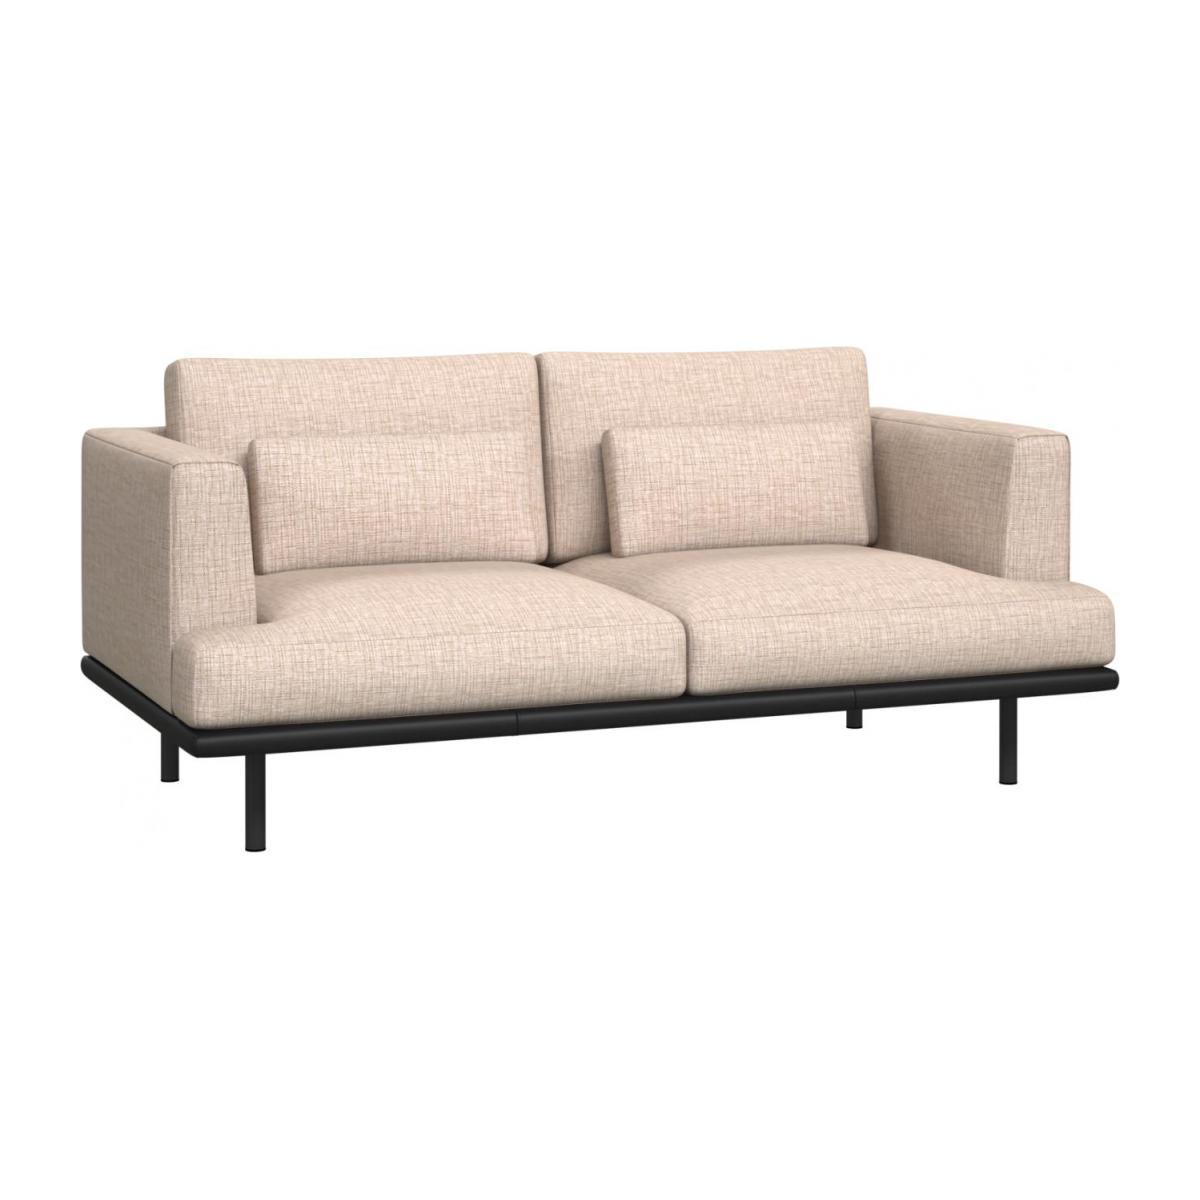 2 seater sofa in Ancio fabric, nature with base in black leather n°1